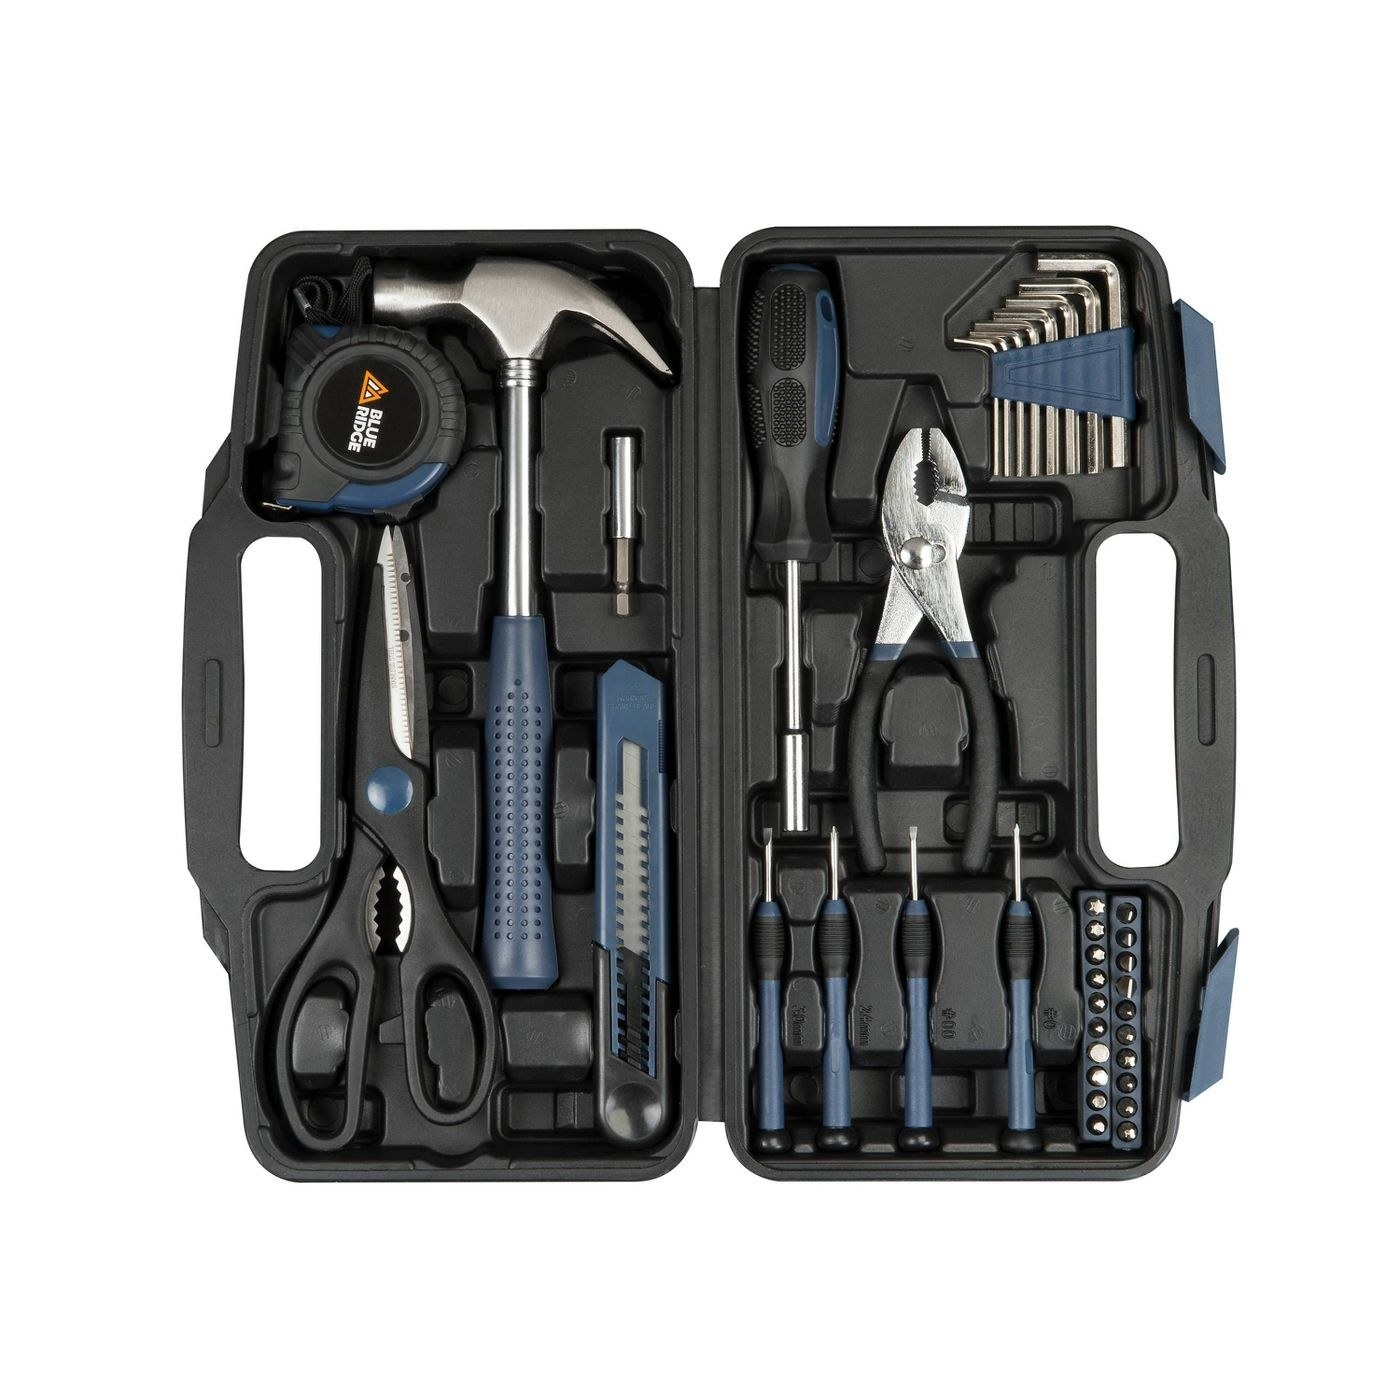 A black plastic case filled with blue tools like a hammer, pliers, screwdriver, and more